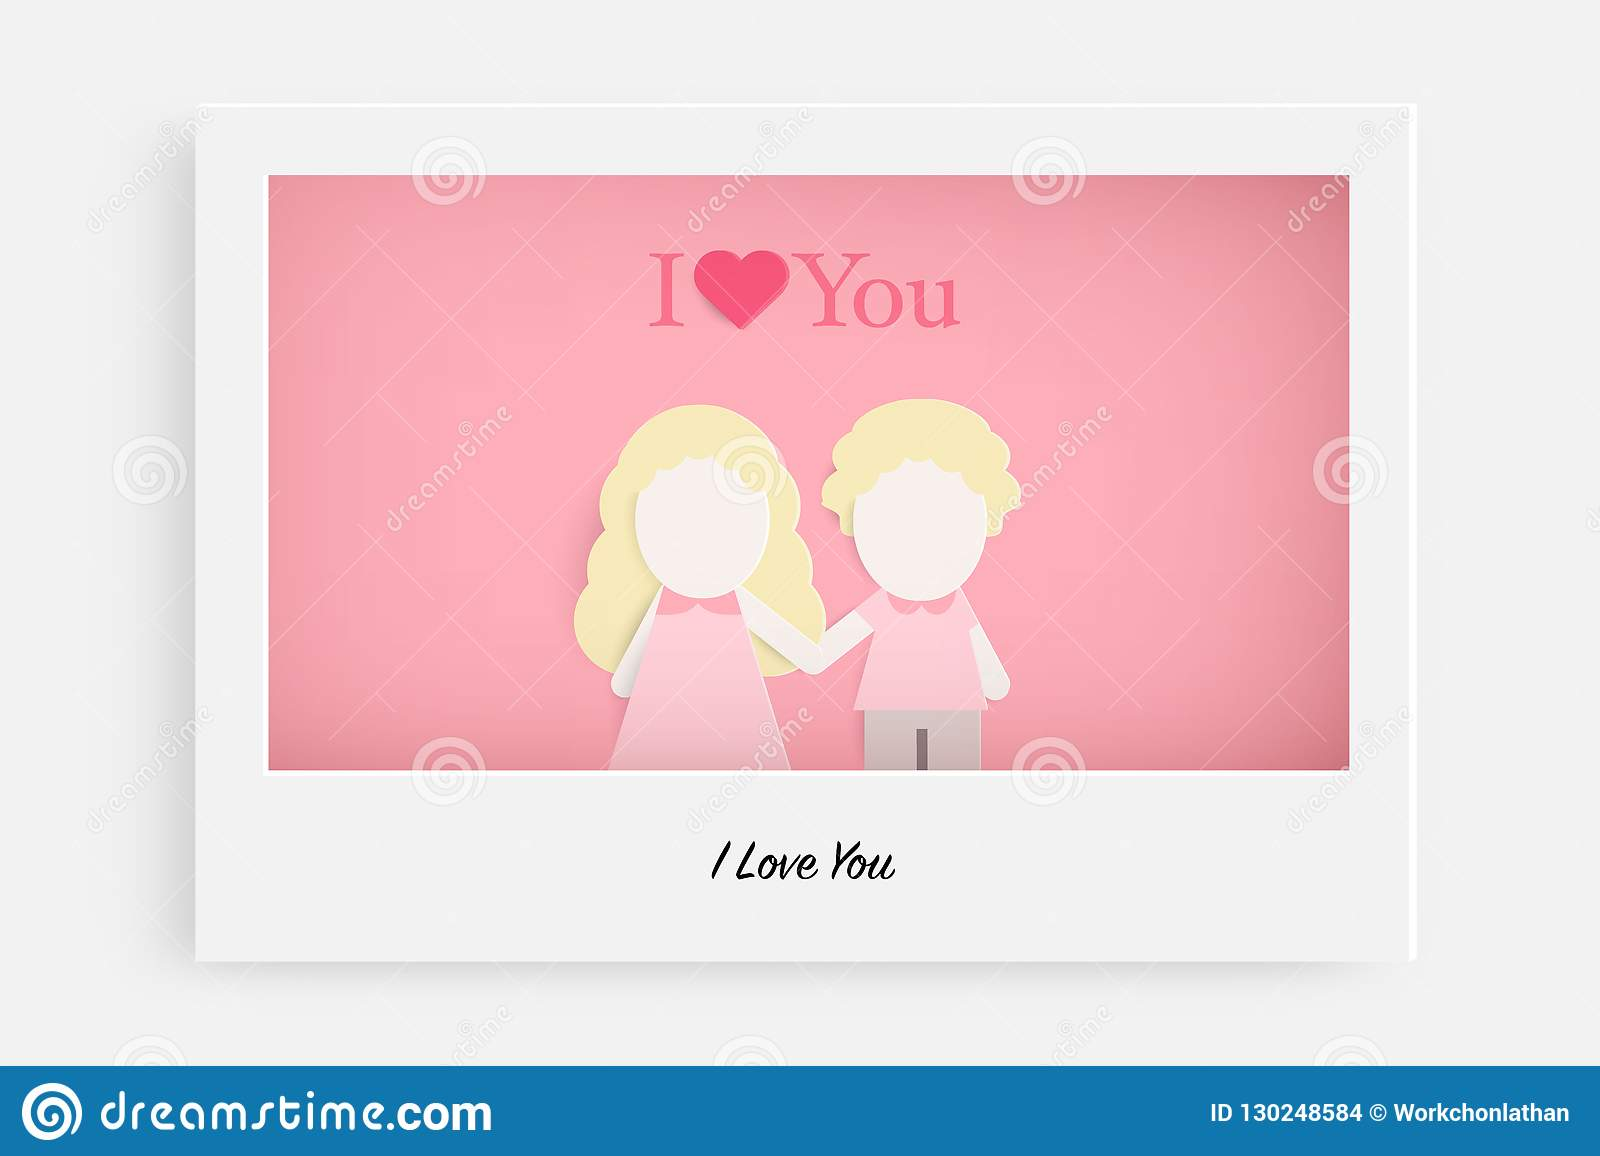 Cute couple in love on pink background and text I Love You